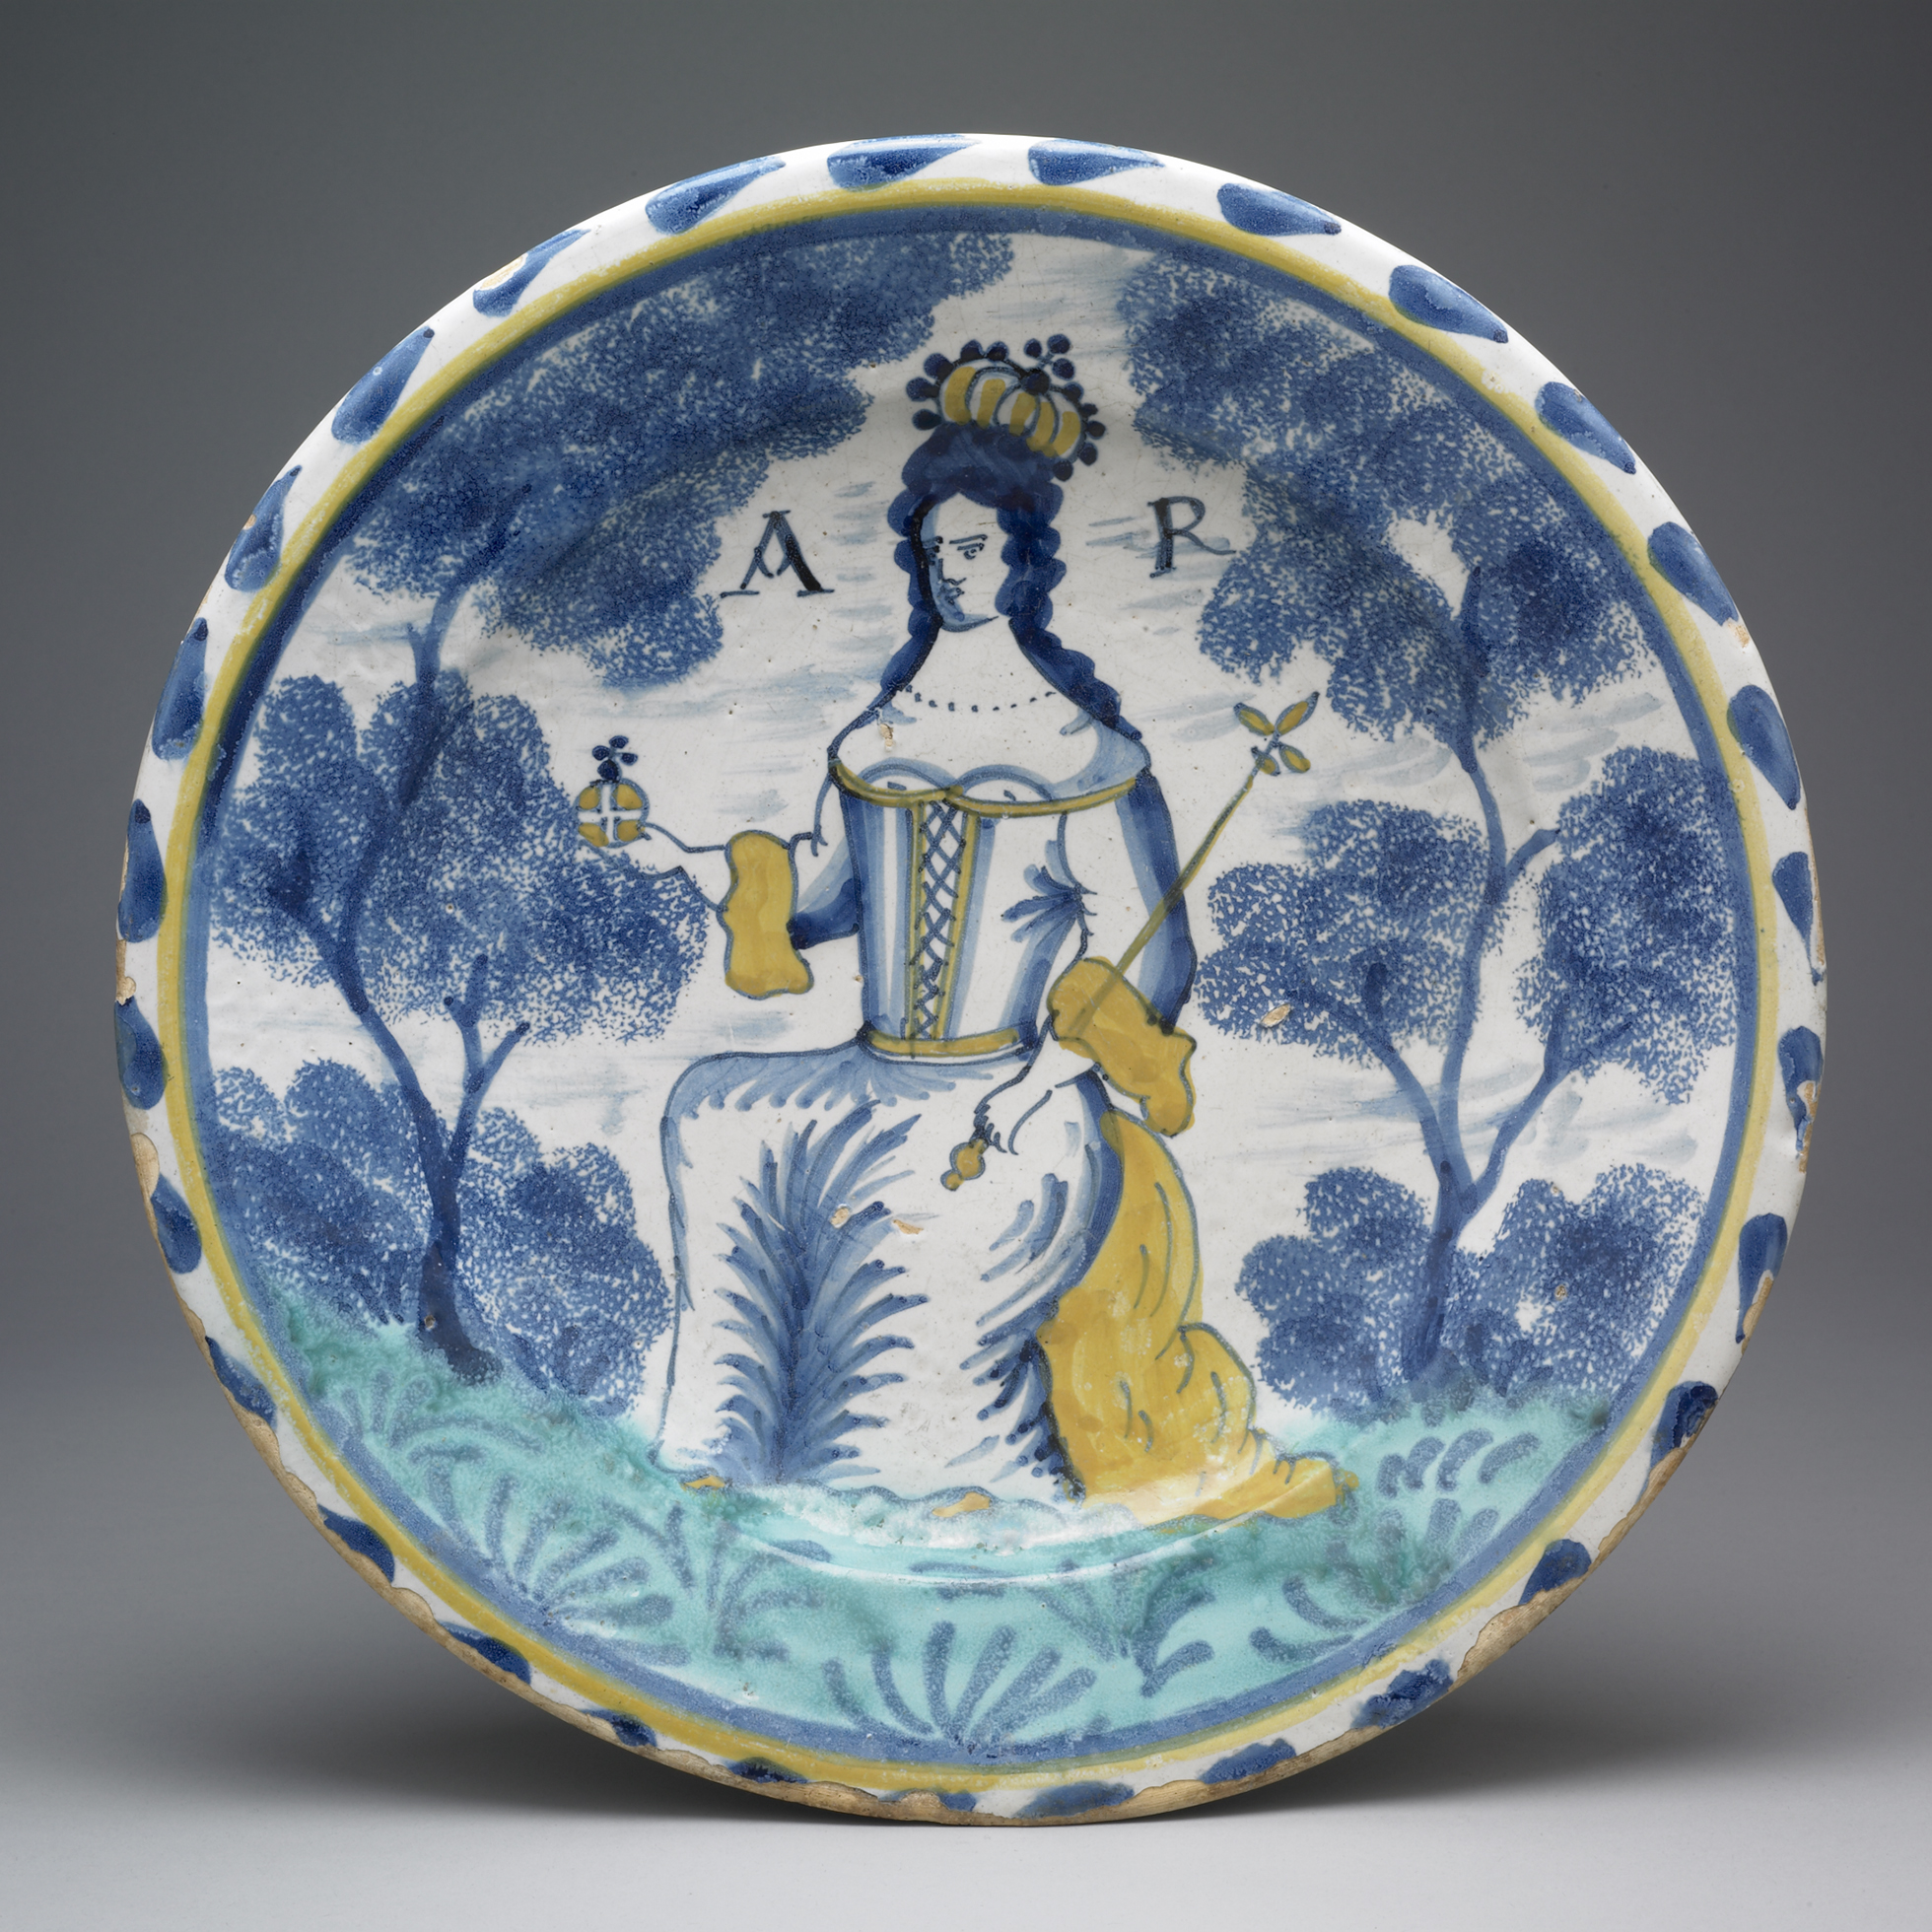 An earthenware dish glazed with blue and yellow, with a central image of Queen Anne.